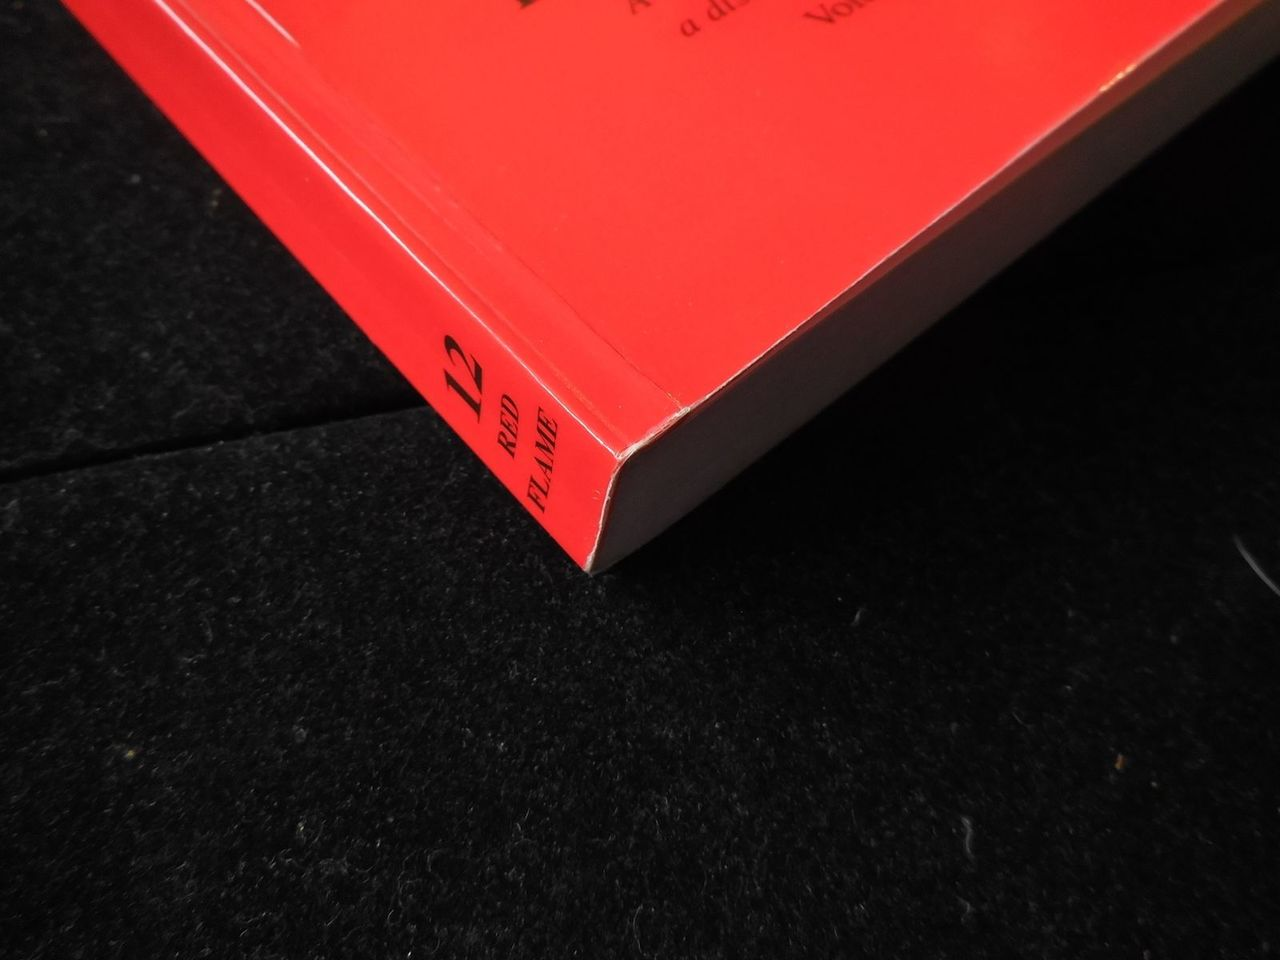 RED FLAME 12: GRADY LOUIS MCMURTY's biography SIGNED Crowley OTO Thelema occult